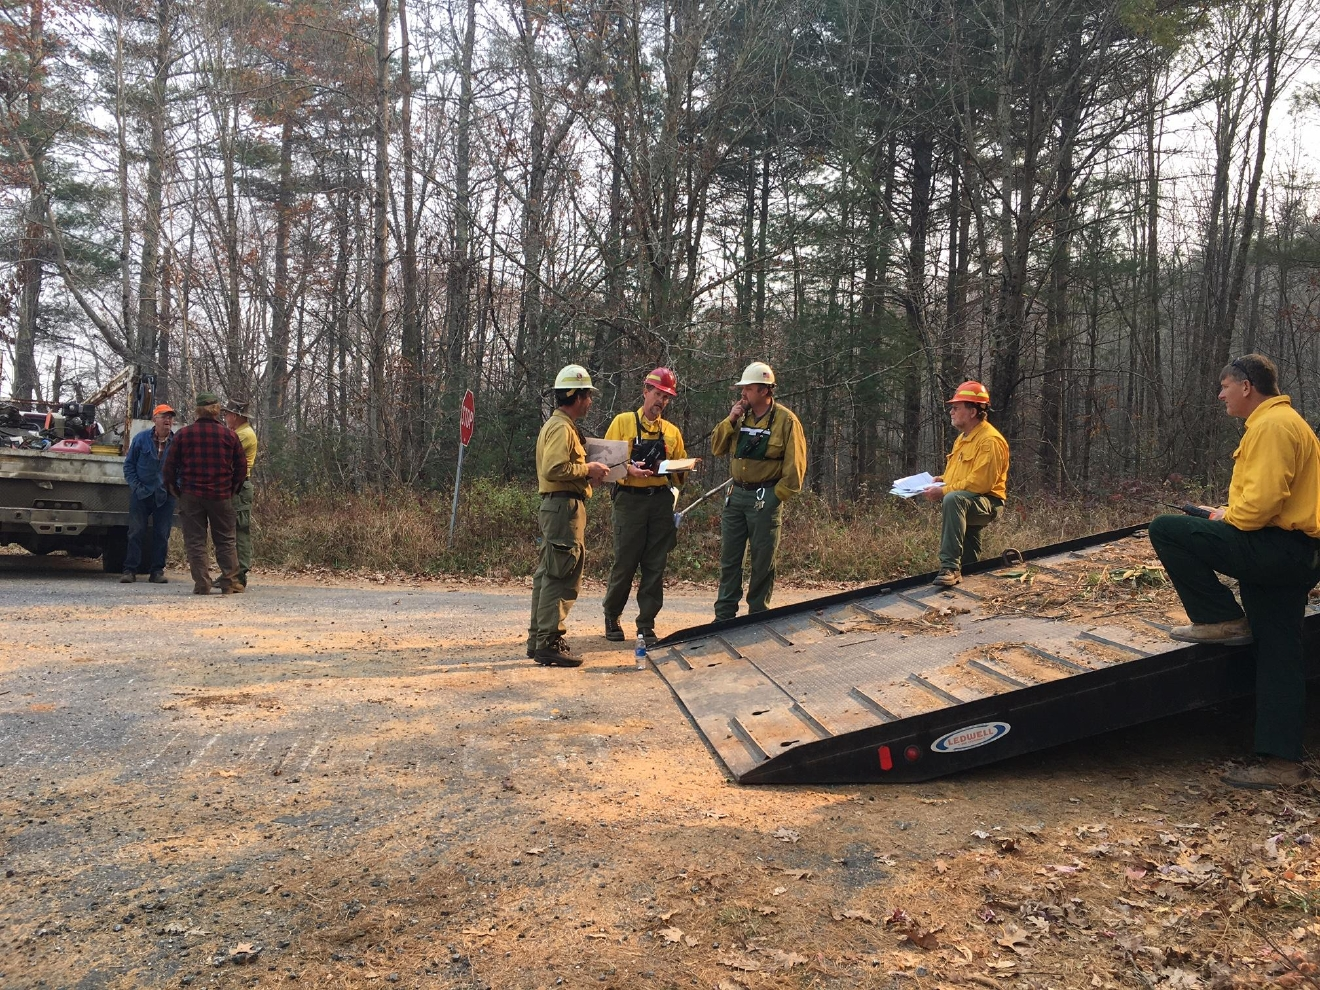 Conditions also helped the Party Rock wildfire grow by nearly 1,000 acres. By Thursday afternoon, it was burning 6,712 acres and 32 percent contained. (Photo credit: WLOS staff)